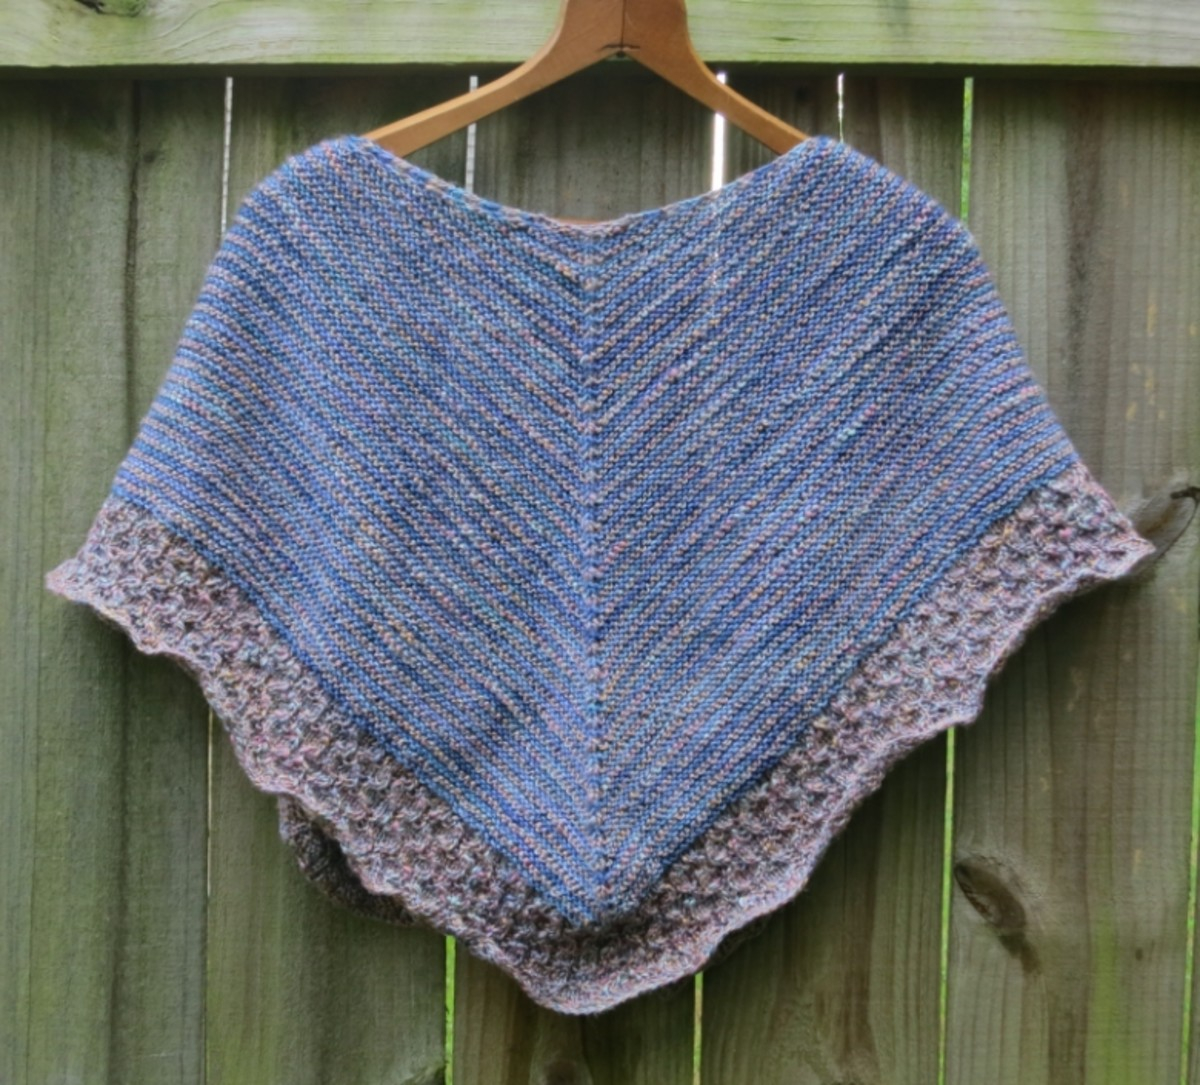 Free Knitted Shawl Pattern : Free Knitting Pattern: Lightweight Textured Shawl hubpages